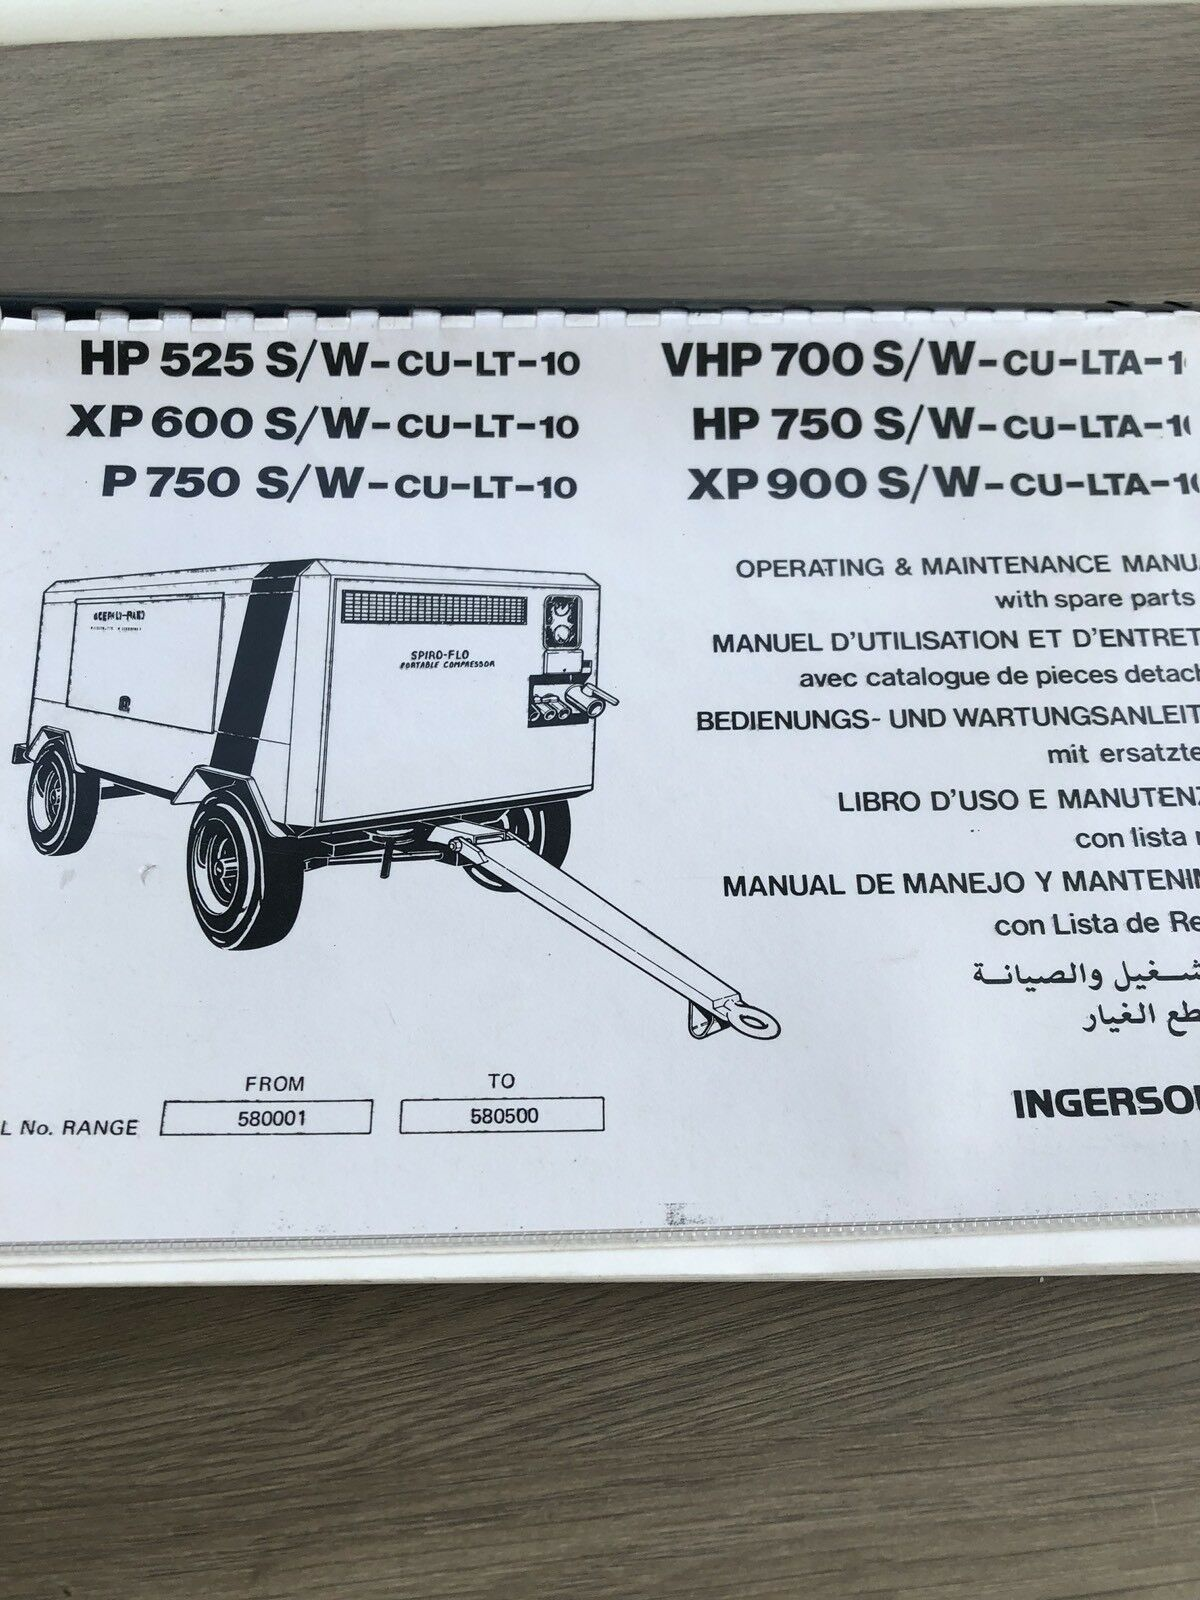 Ingersoll Rand Vhp700Wcat Xp900Wcat Air Compressor Inst. Main.parts Manual  Incv 1 of 3Only 1 available ...